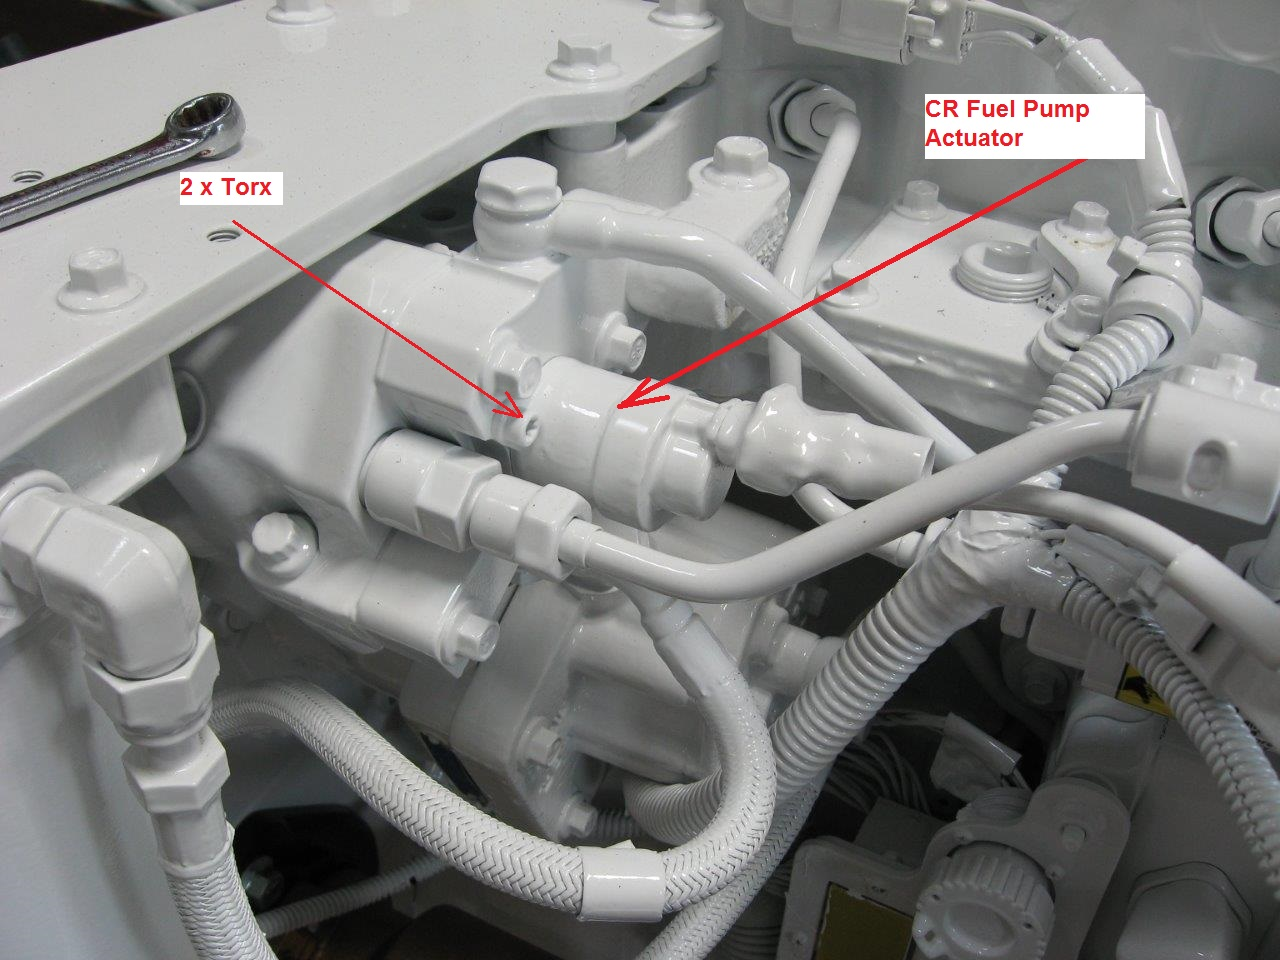 Cummins Marine Fuel Pump Actuator